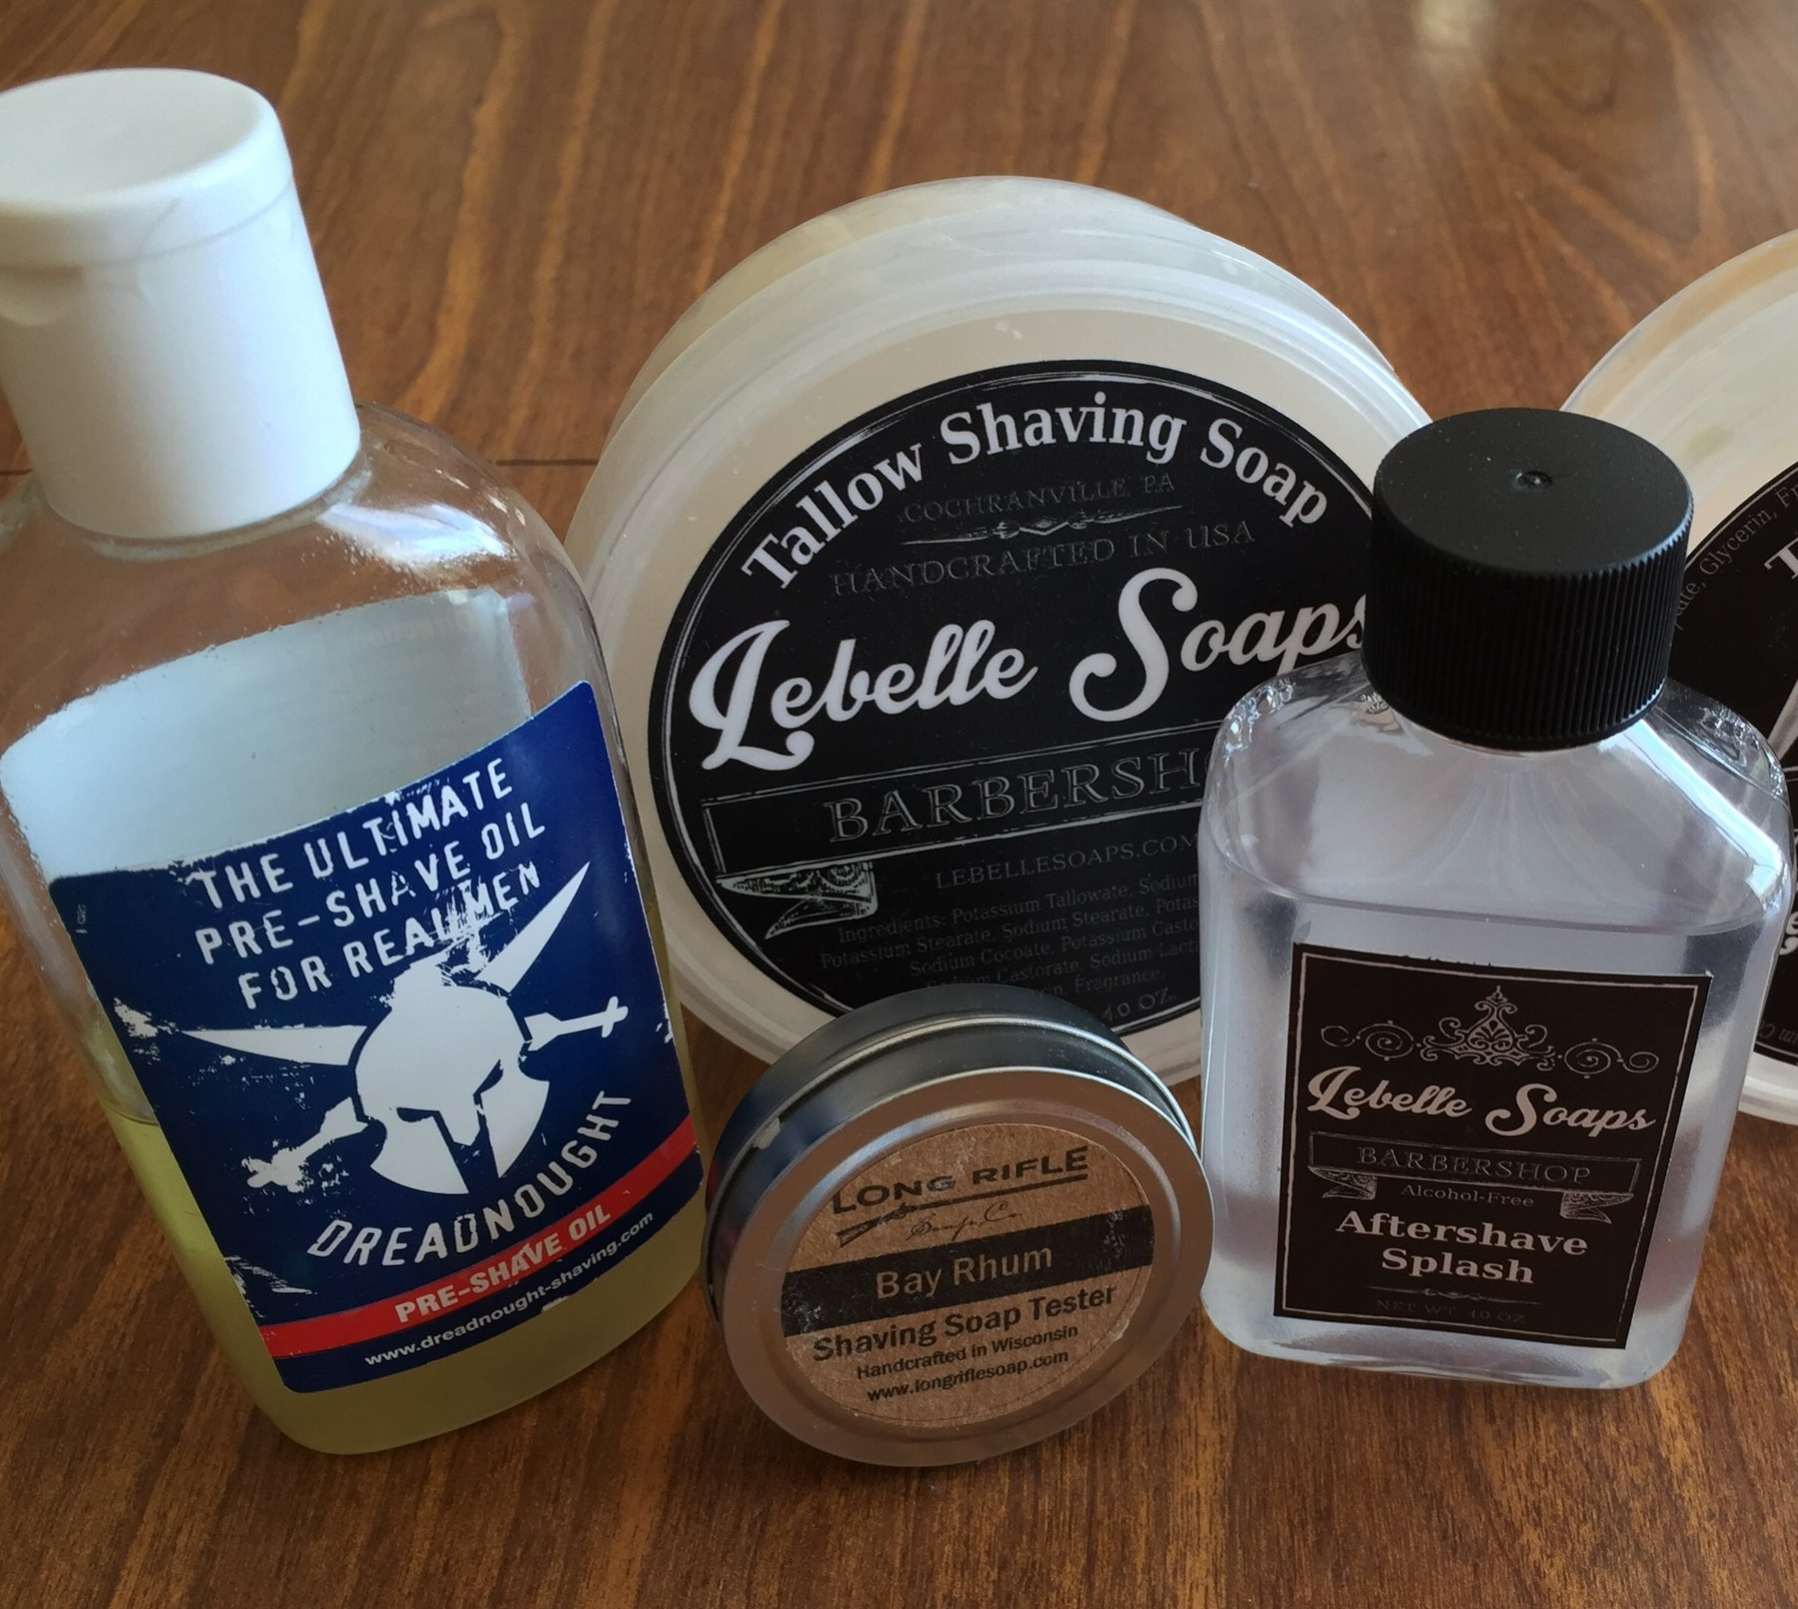 Featured from left to right: Dreadnought pre-shave oil, Lebelle Soaps Barbershop shave soap, Long Rifle Soap Company Bay Rhum tester, and Lebelle Soaps Barbershop Aftershave Splash. The tester is a good indication of the typical size of a sample.